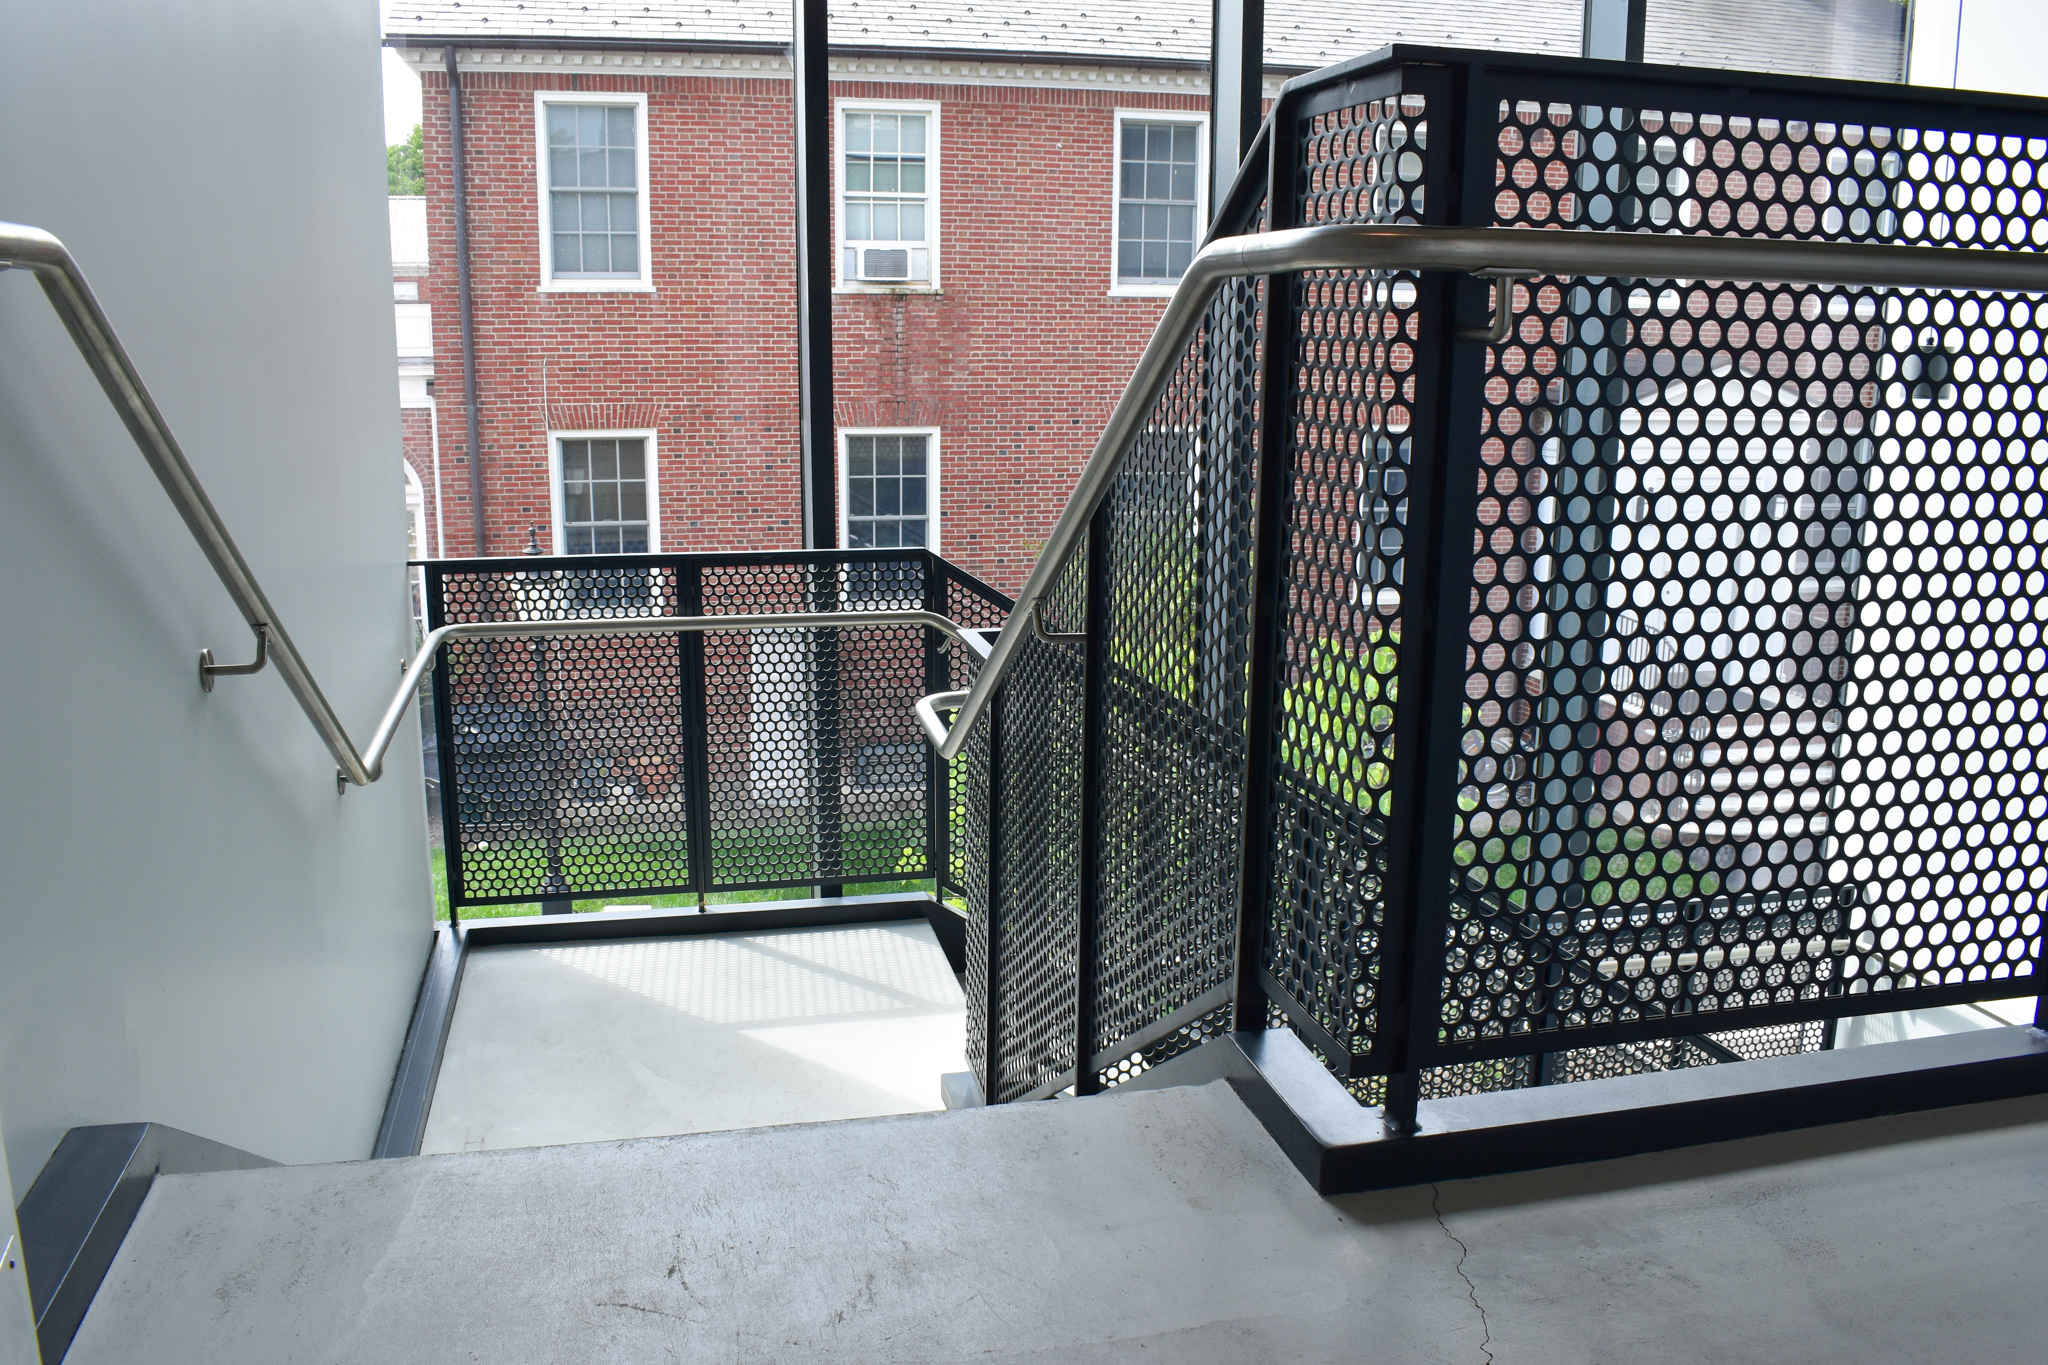 This stair design was to wrap around the 4 sides of the rectangular stair tower.